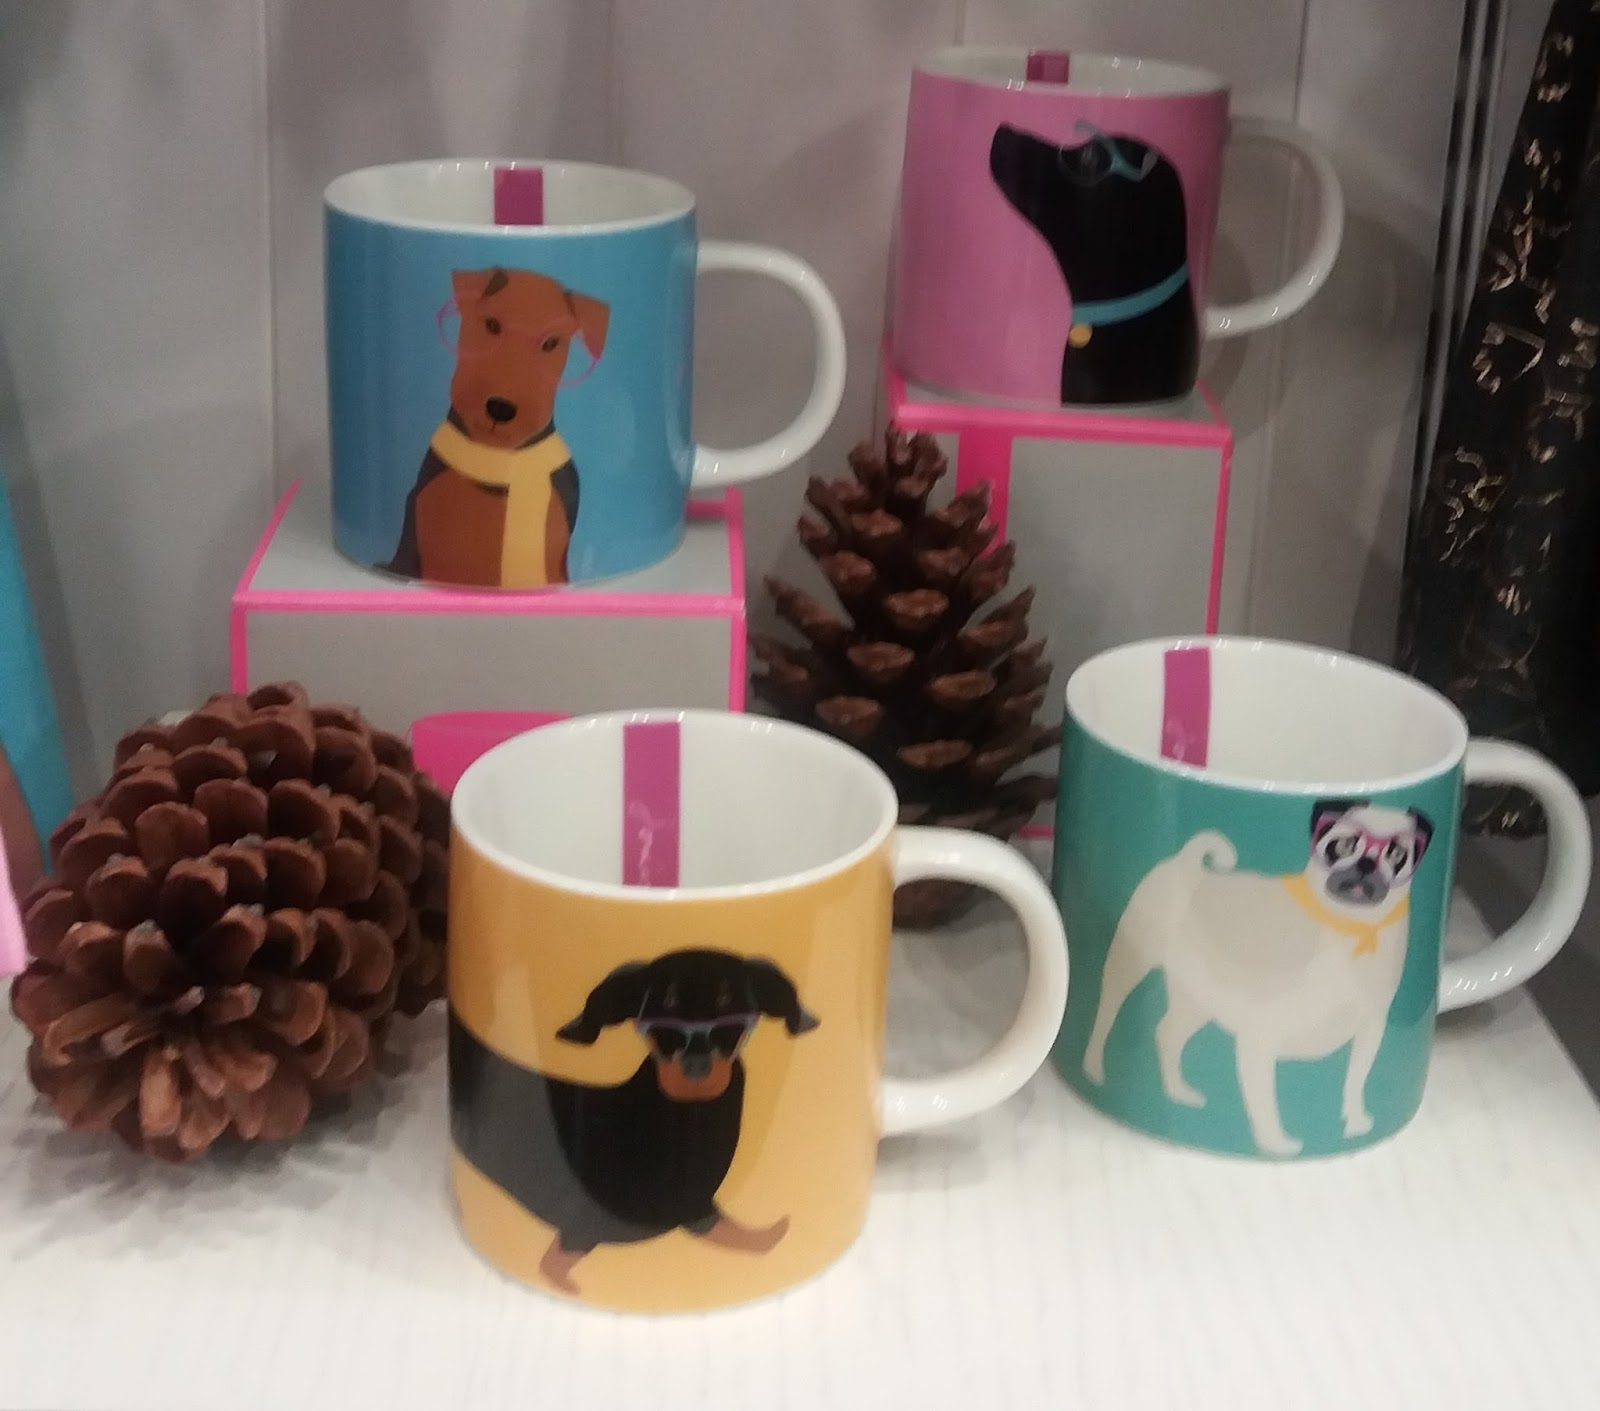 Ideas For Christmas: Animal Themed Gifts